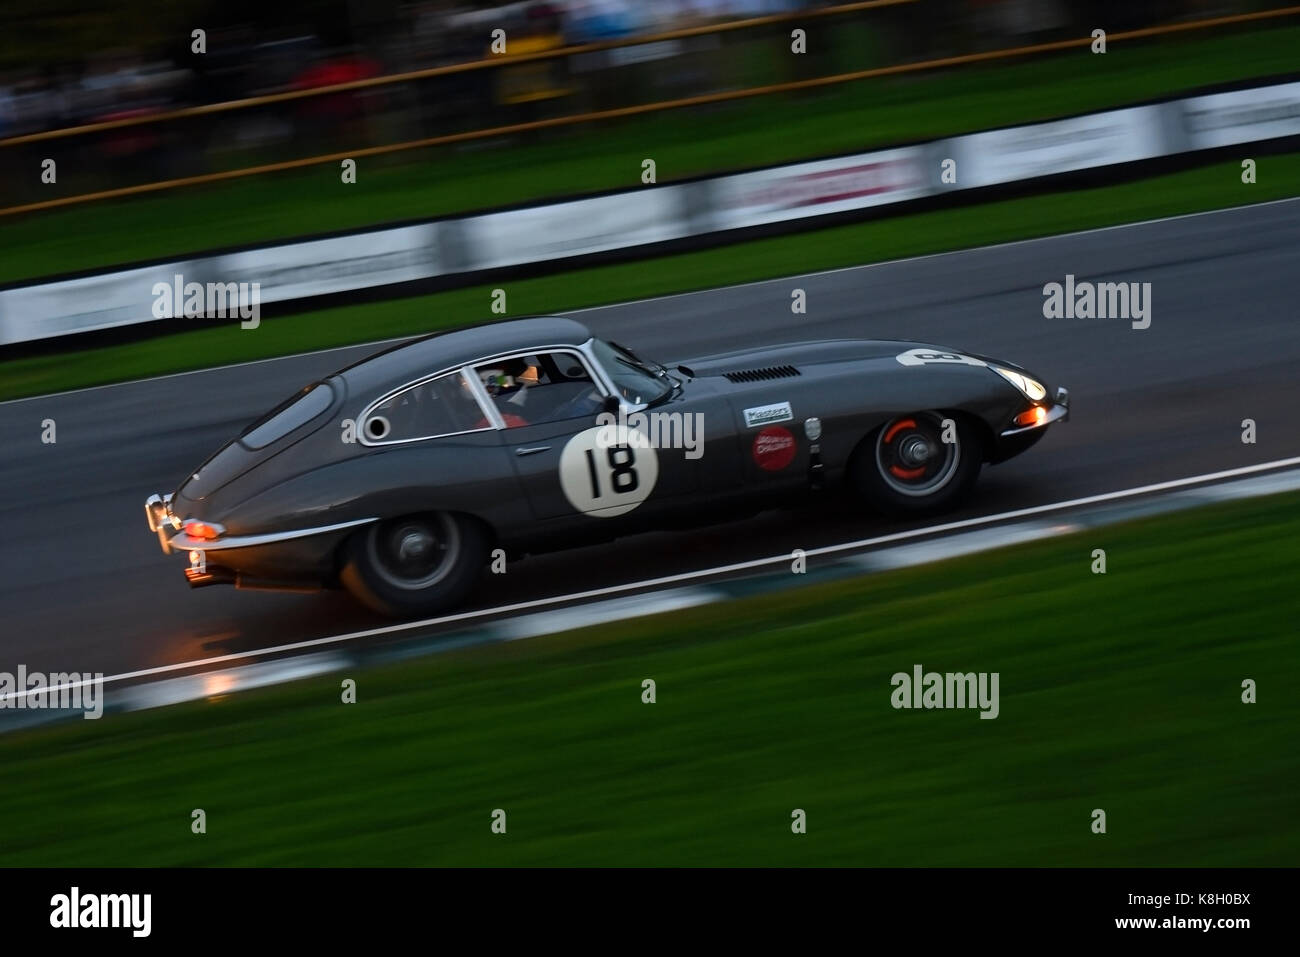 jaguar-e-type-with-glowing-red-hot-brakes-racing-in-the-kinrara-trophy-K8H0BX.jpg